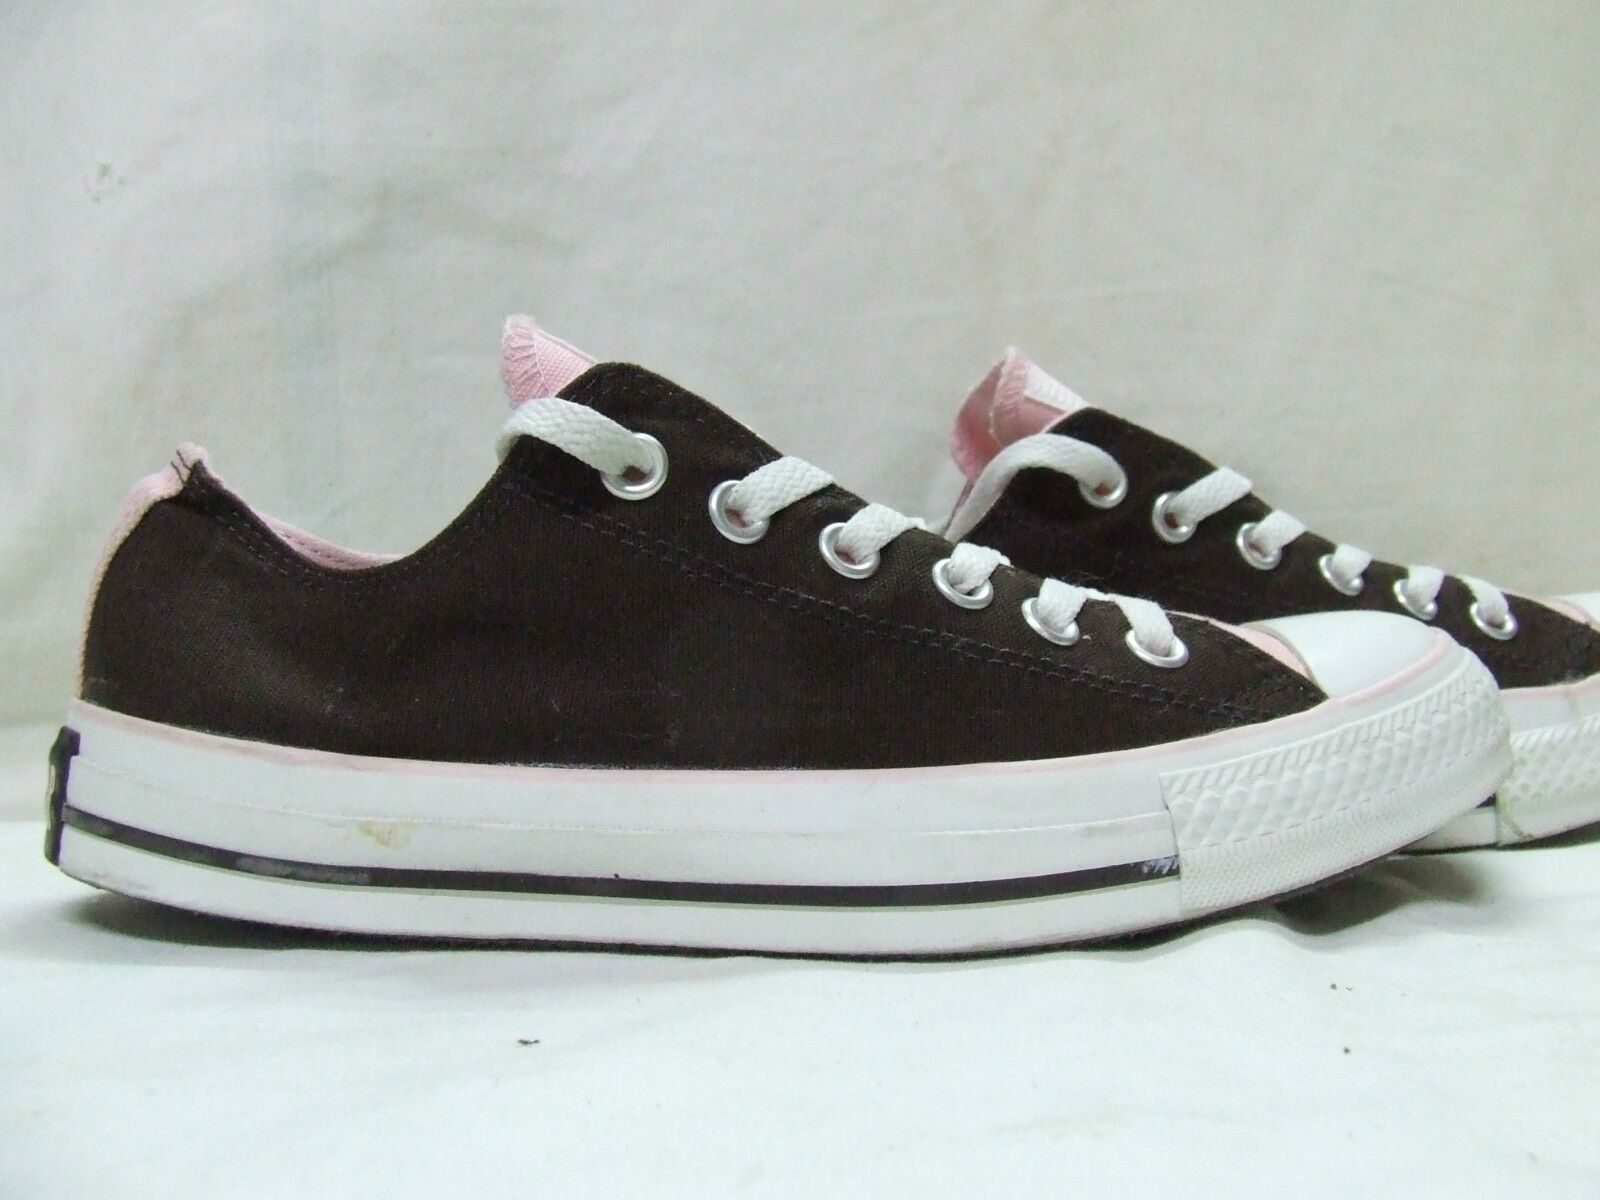 SHOES MAN WOMAN VINTAGE CONVERSE ALL STAR size 6,5 - 39,5 (003)